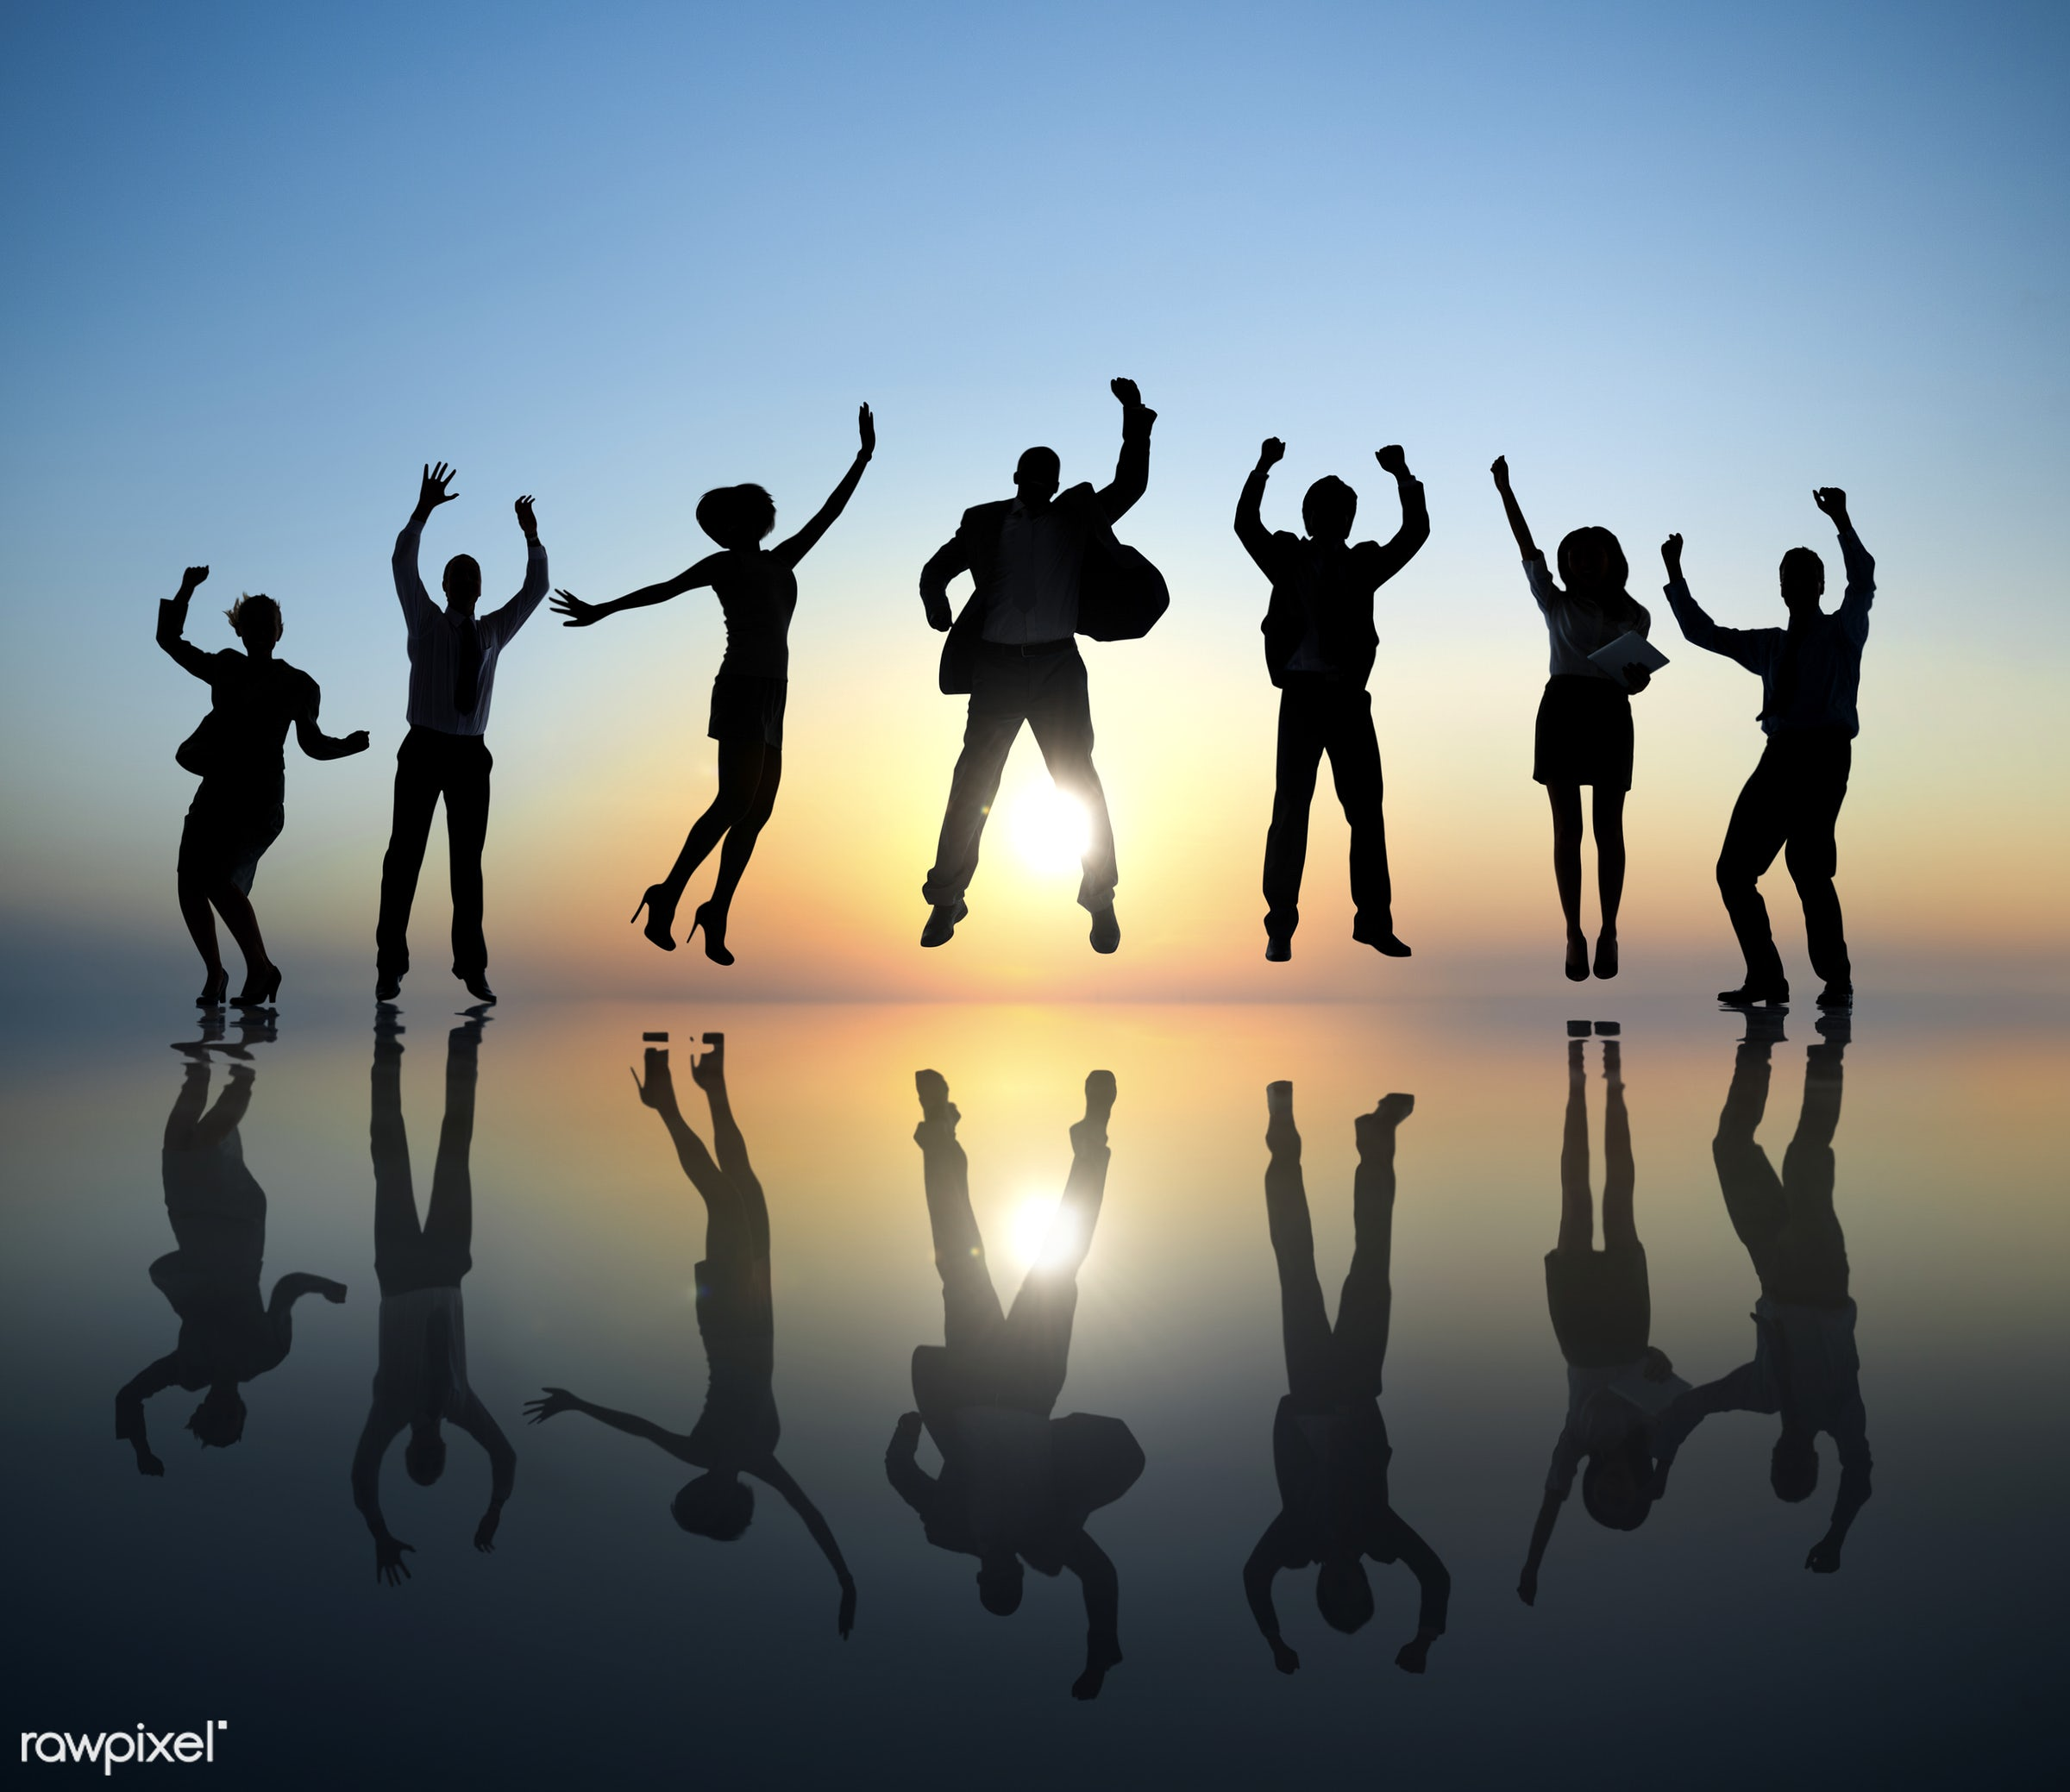 adult, arms outstretched, arms raised, body language, business, business people, business person, businessman, celebration,...